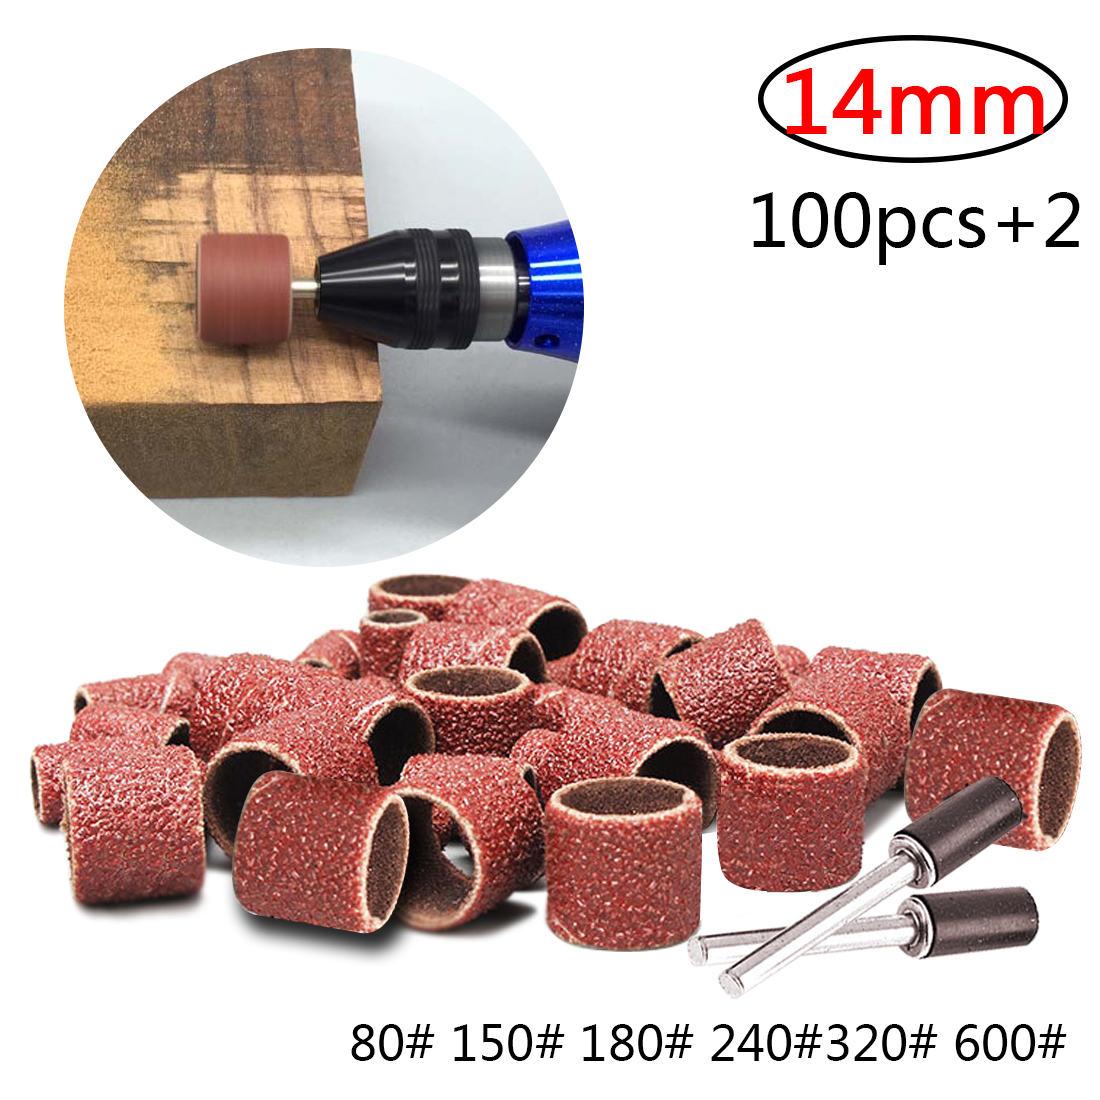 80 Grit Sand Bands Shank Rotary Tool Kit with 2Pcs Mandrels Dophee 100Pcs Sanding Drum 1//2 inch